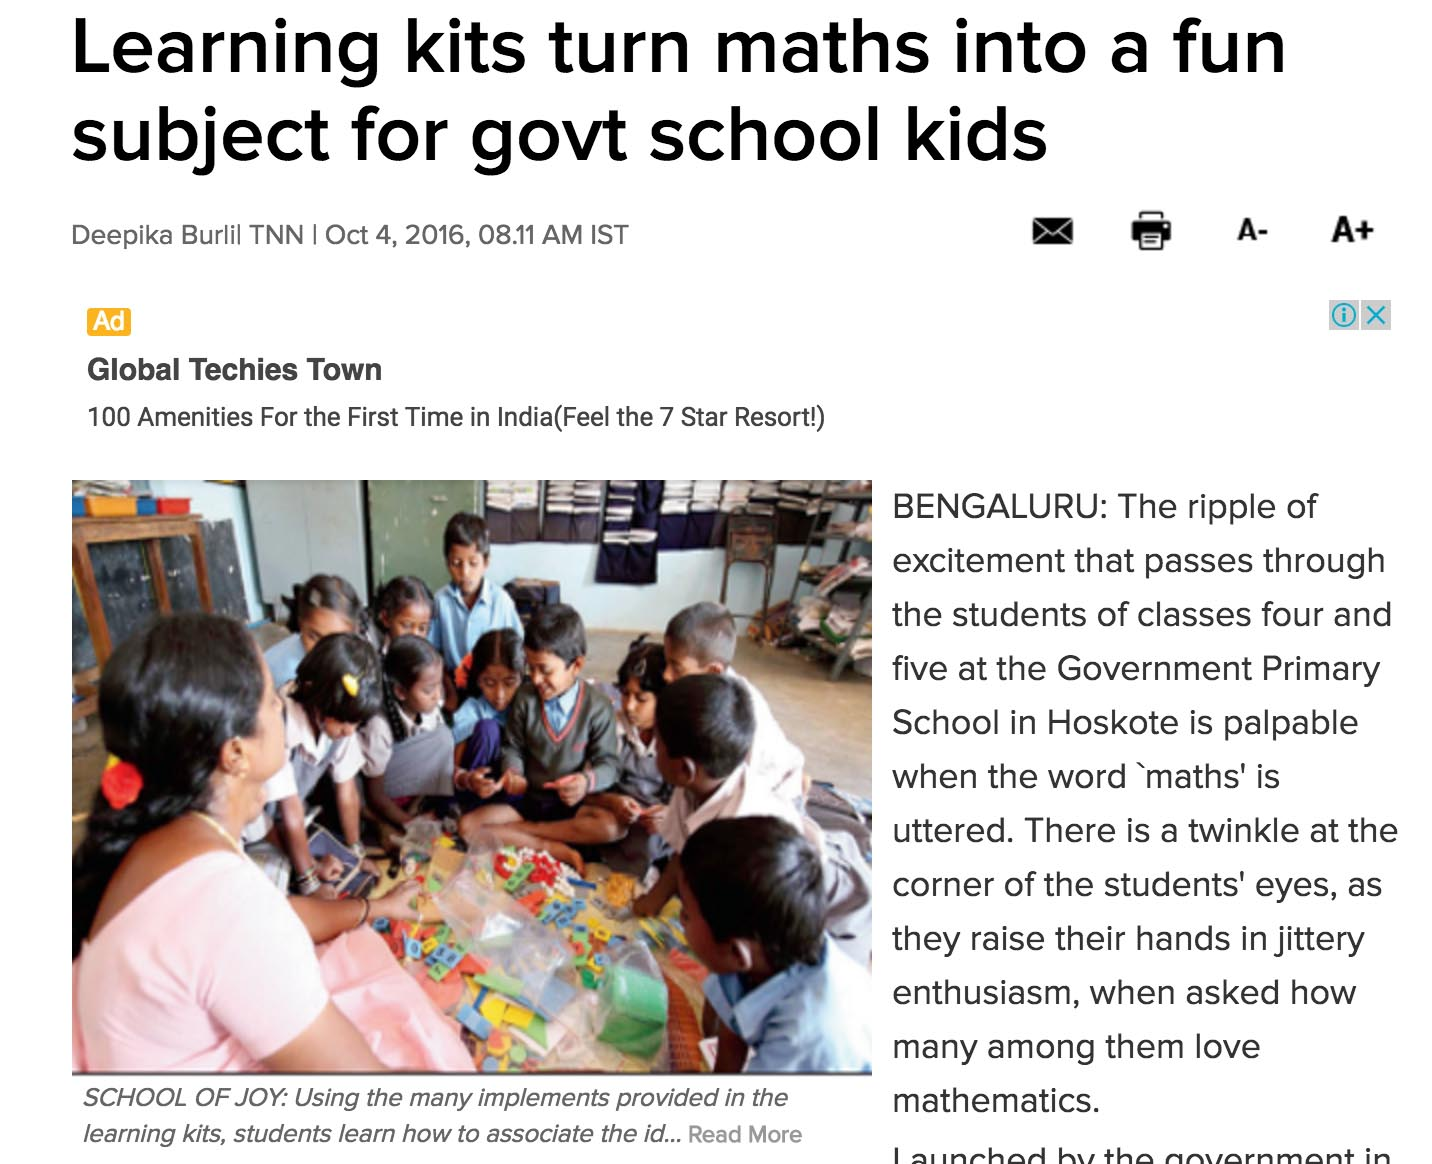 Learning Kits turn maths into a Fun subject for government school kids